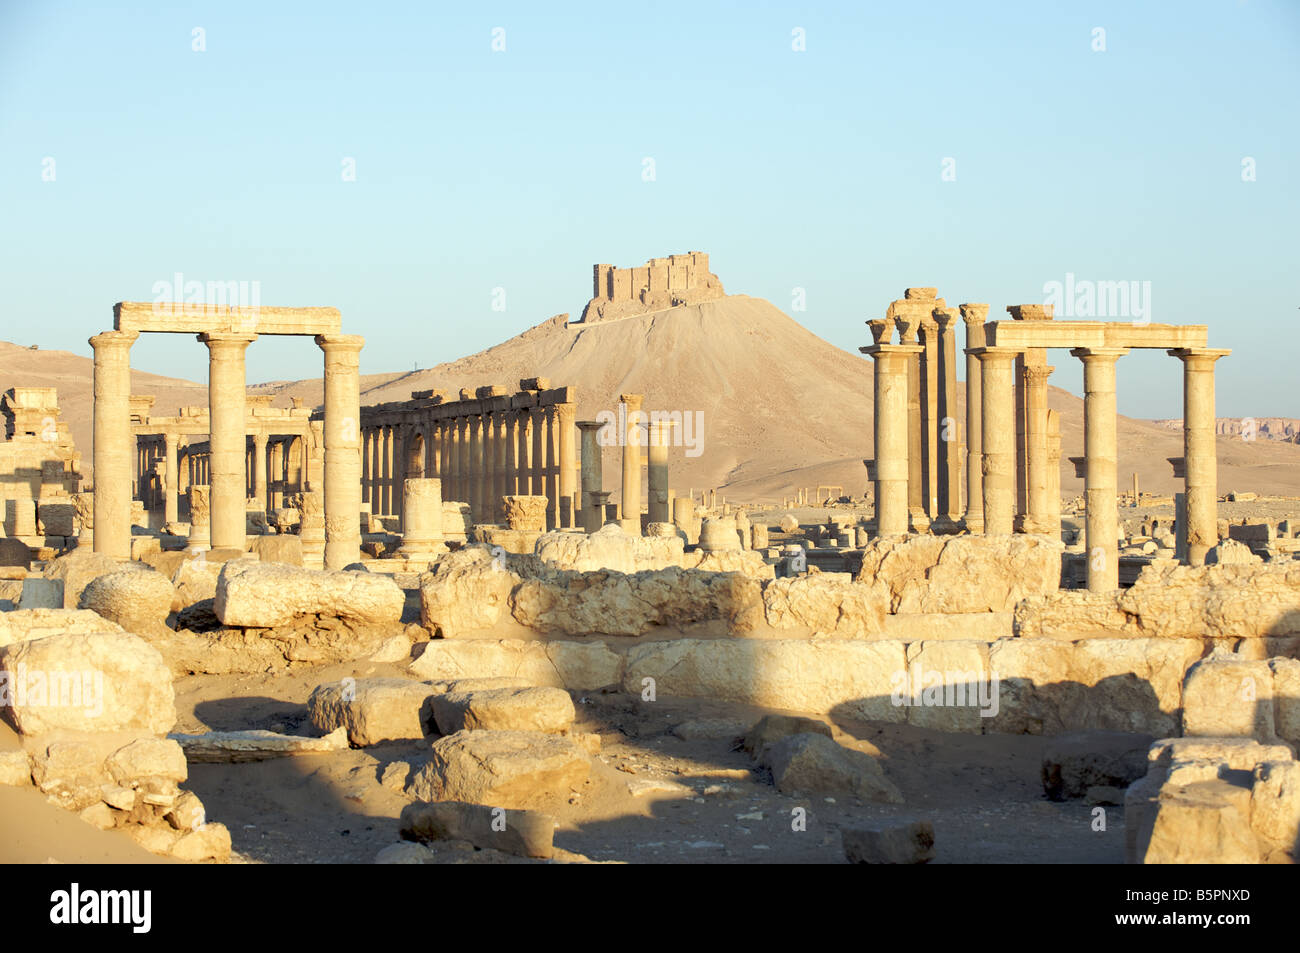 Palmyra Roman ruins with Qalaat ibn Maan castle in background - Stock Image